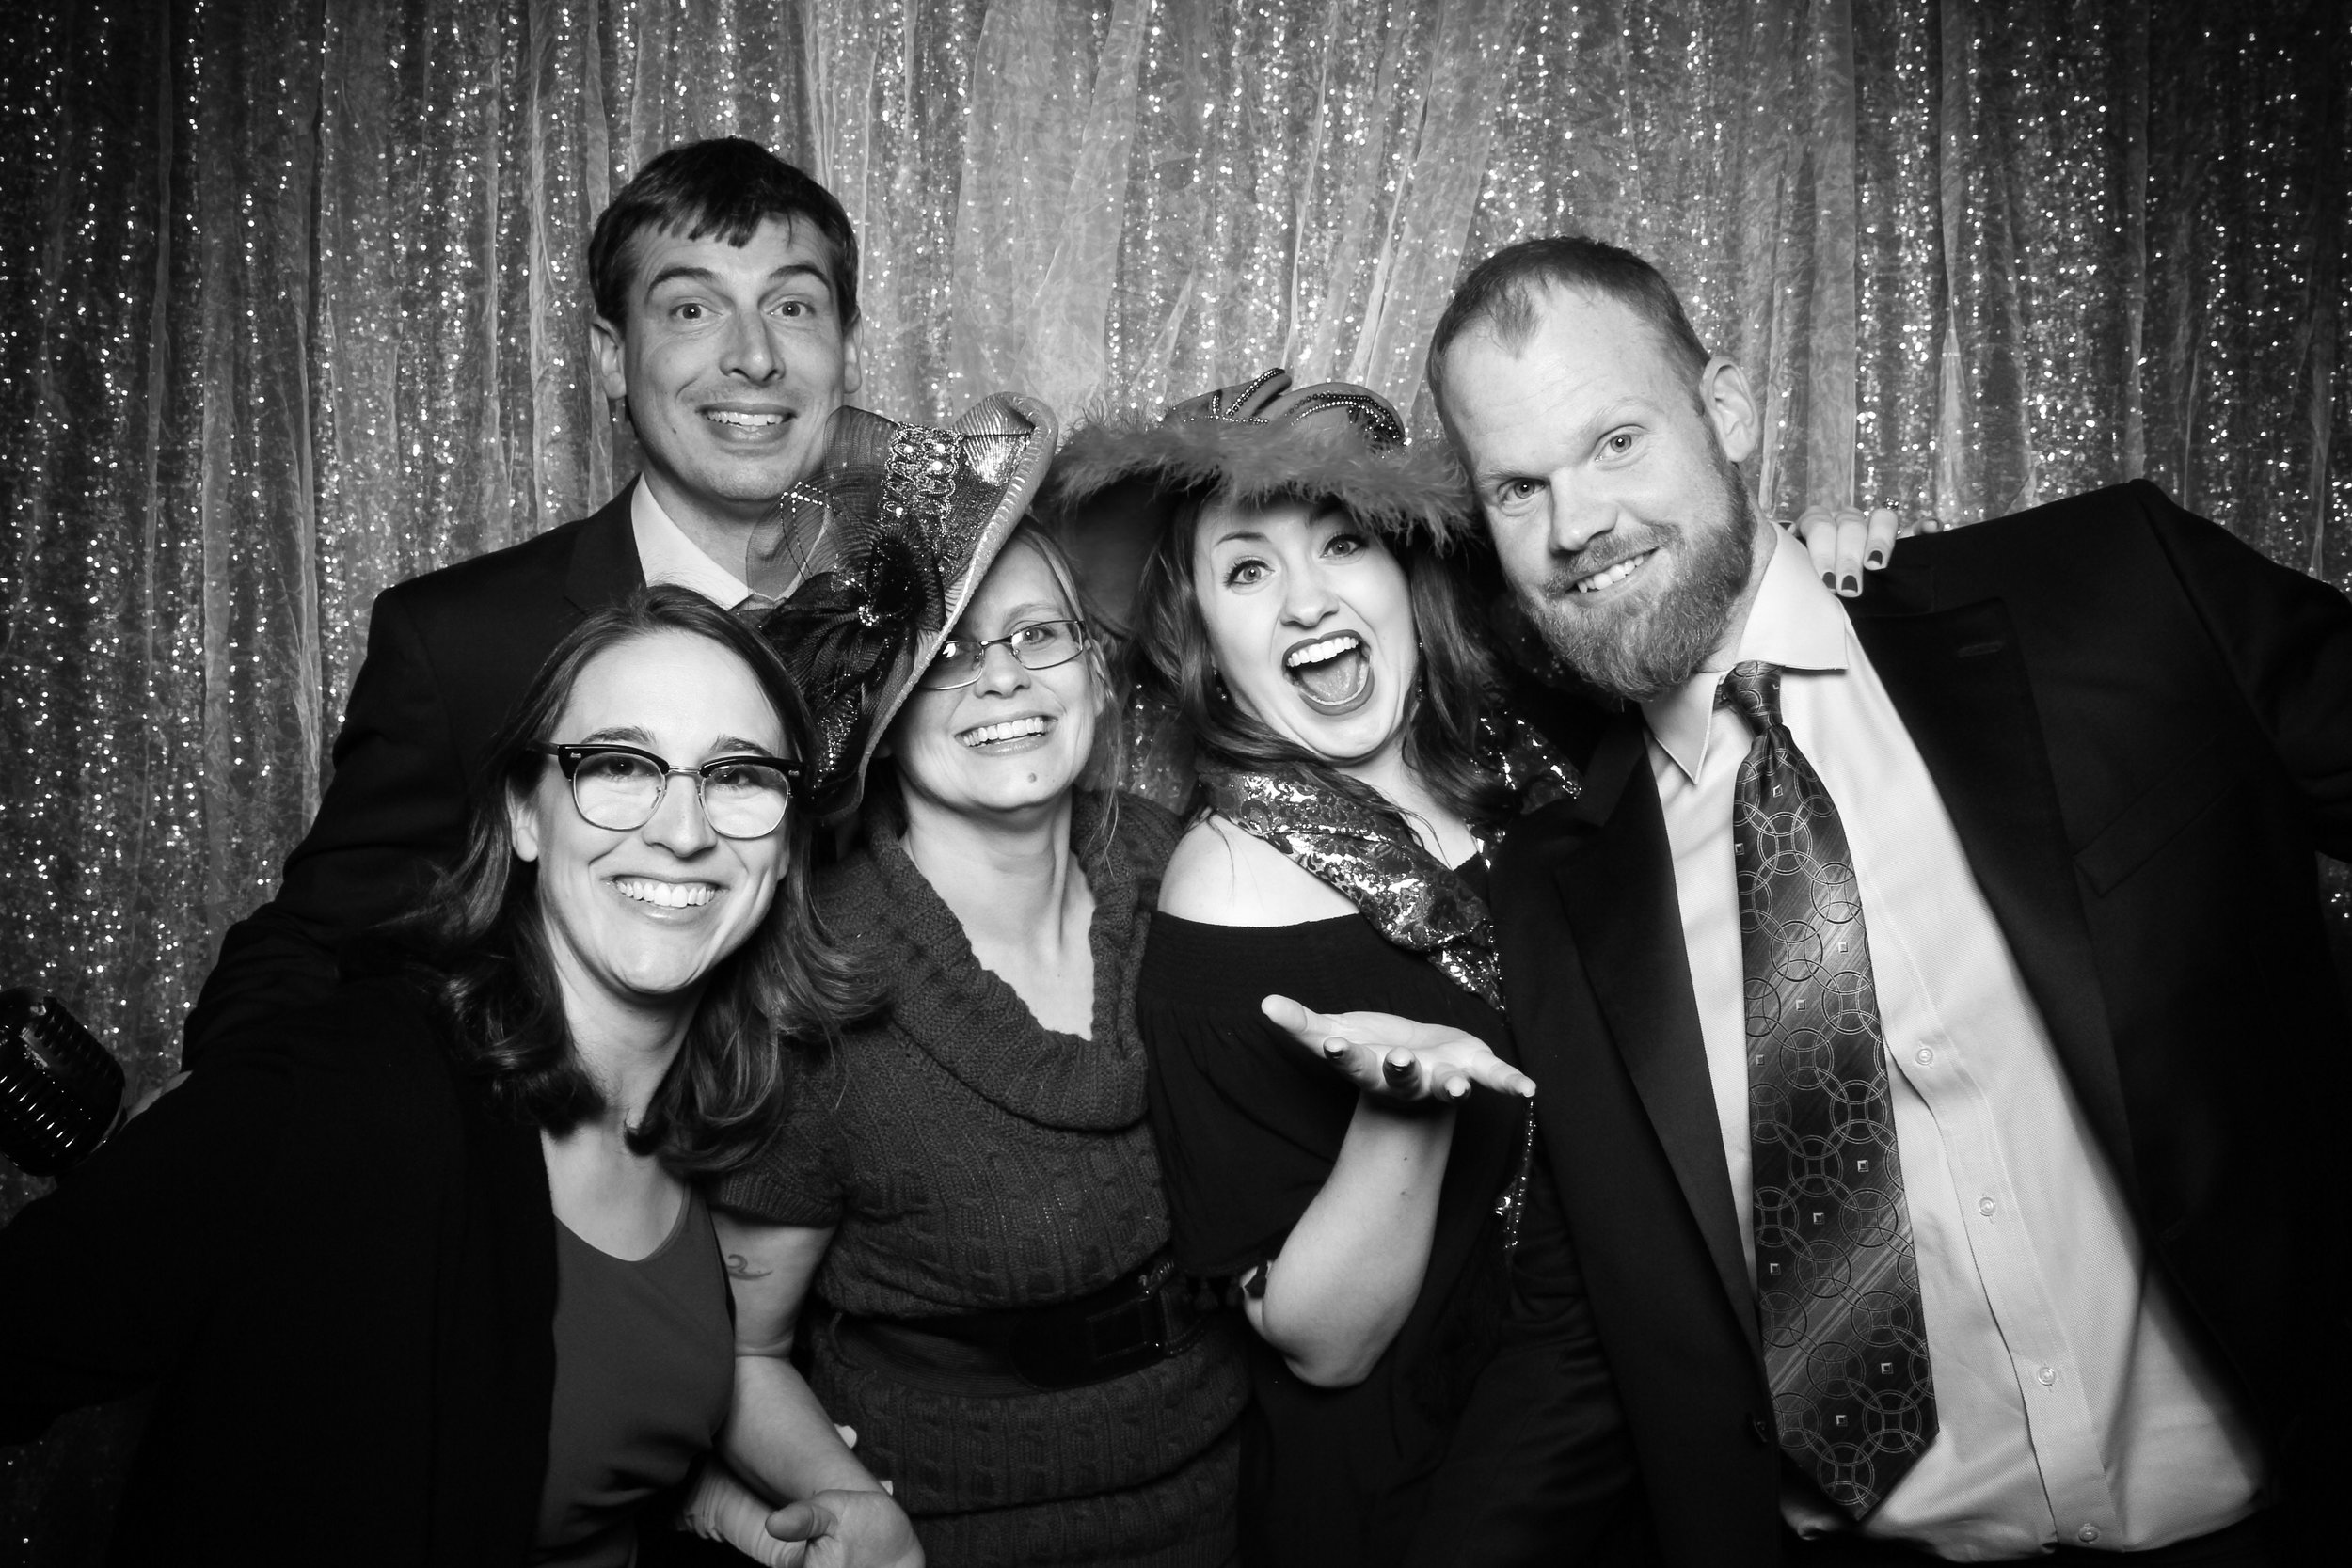 Chicago_Vintage_Wedding_Photobooth_Glen_Club_15.jpg